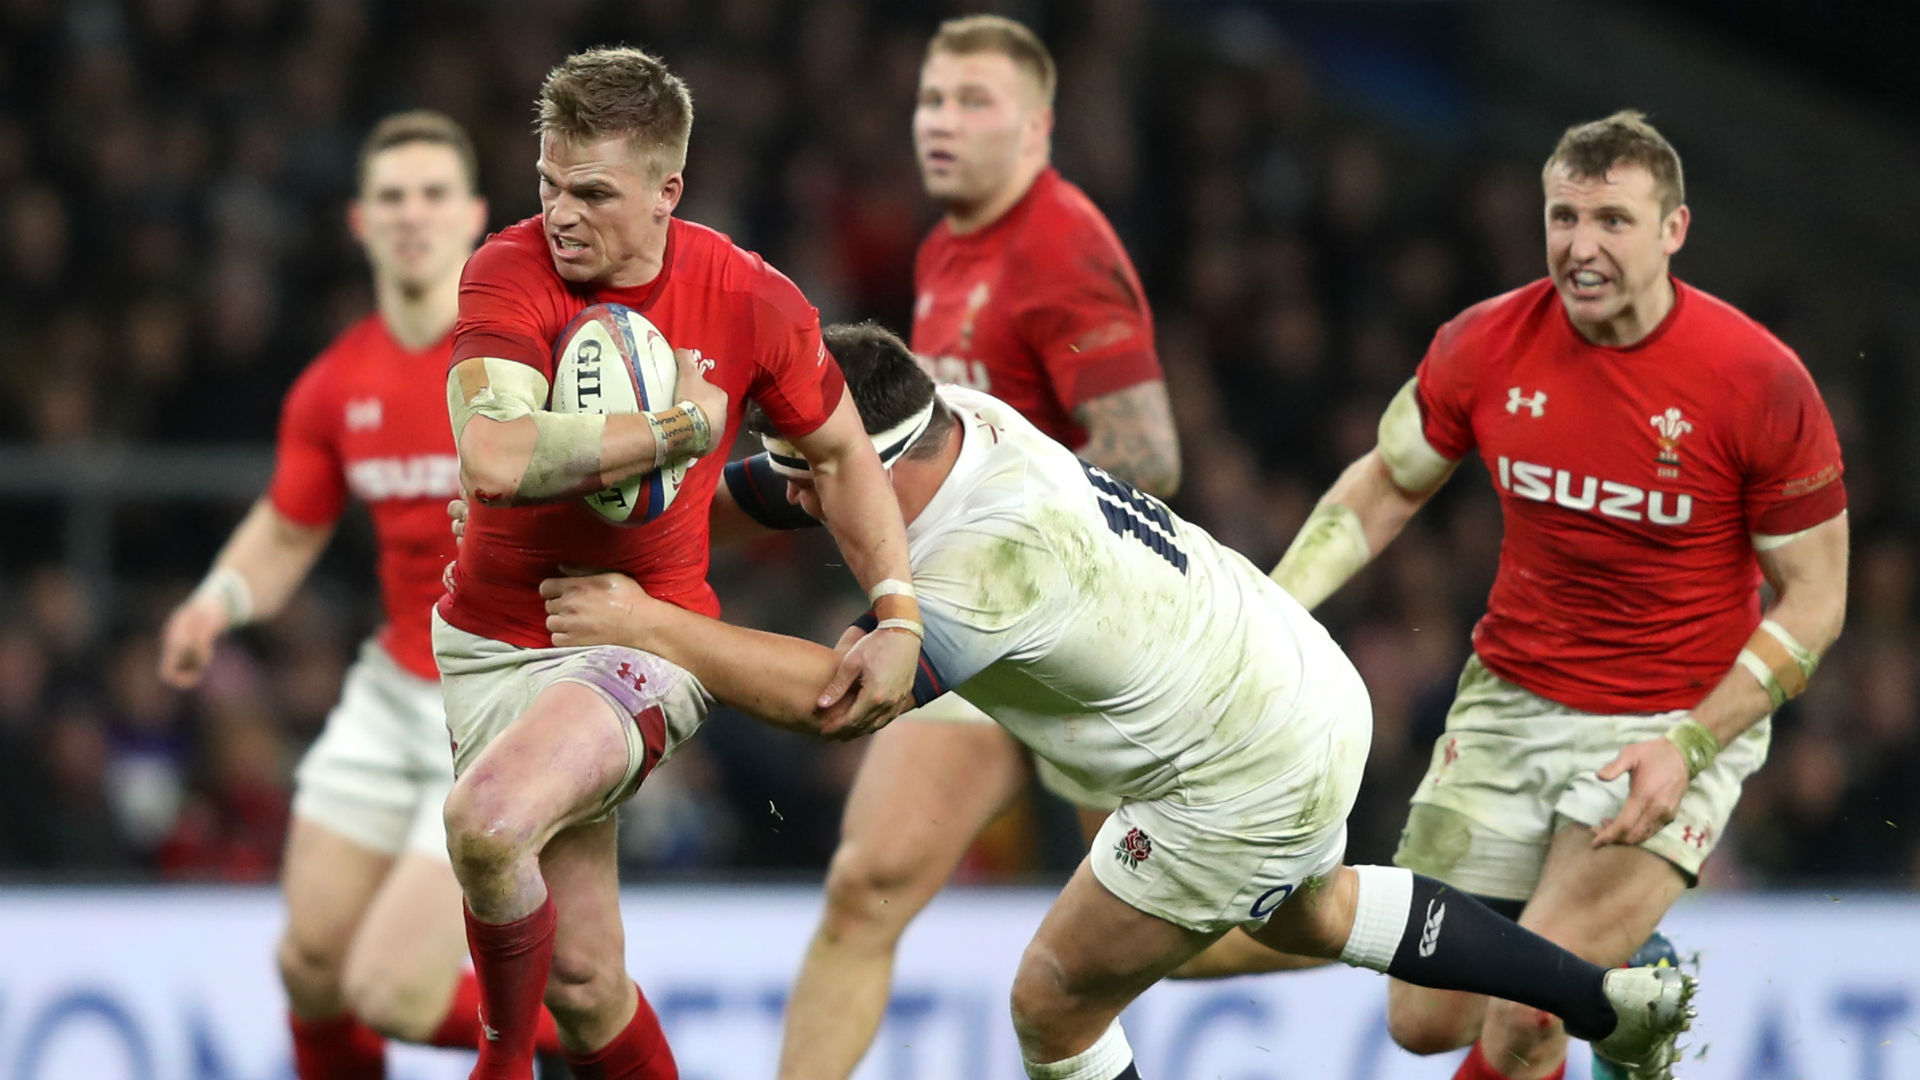 TMO was wrong Wales are told, angering England coach